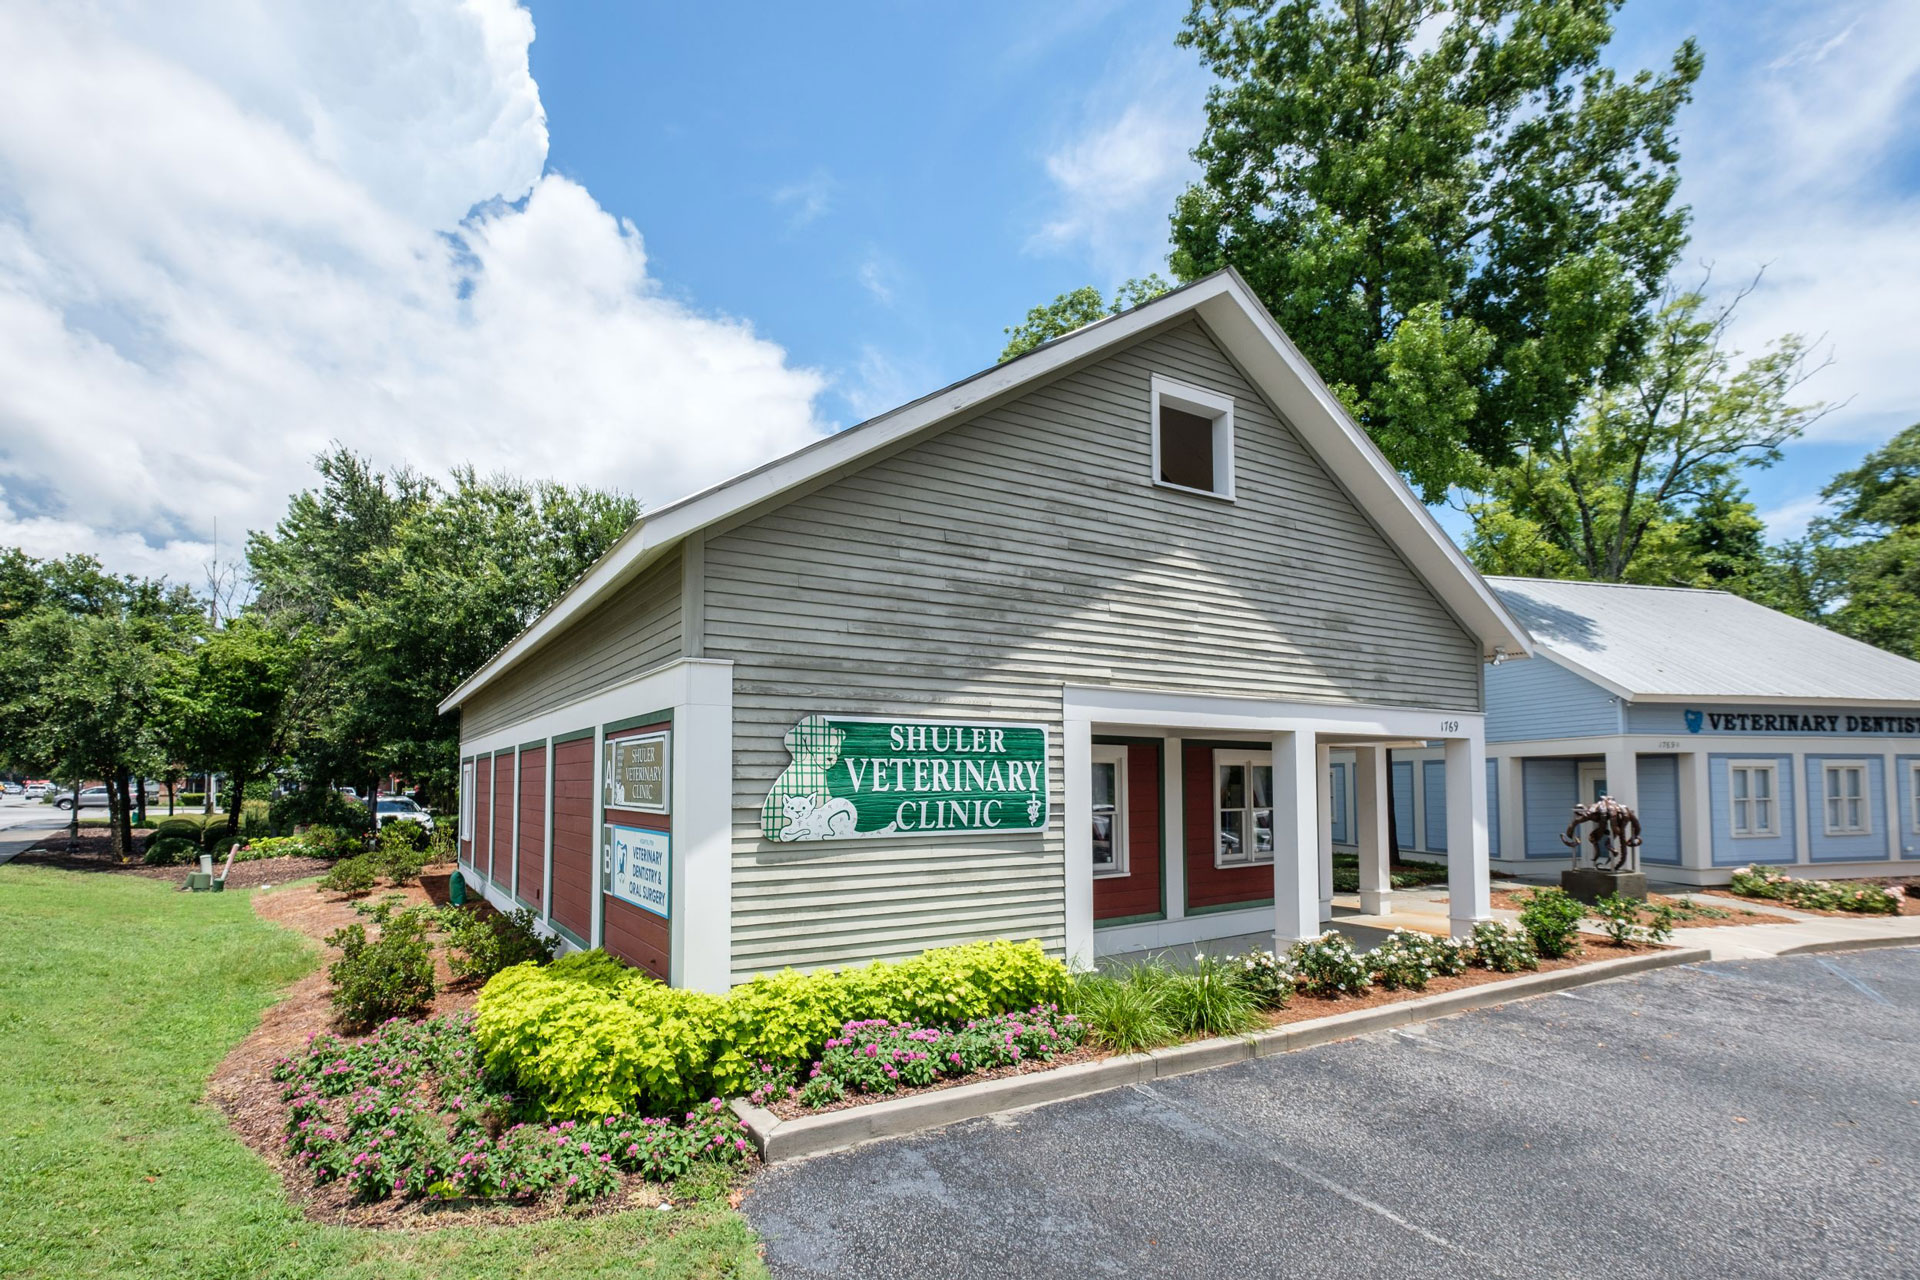 shuler veterinary clinic exterior